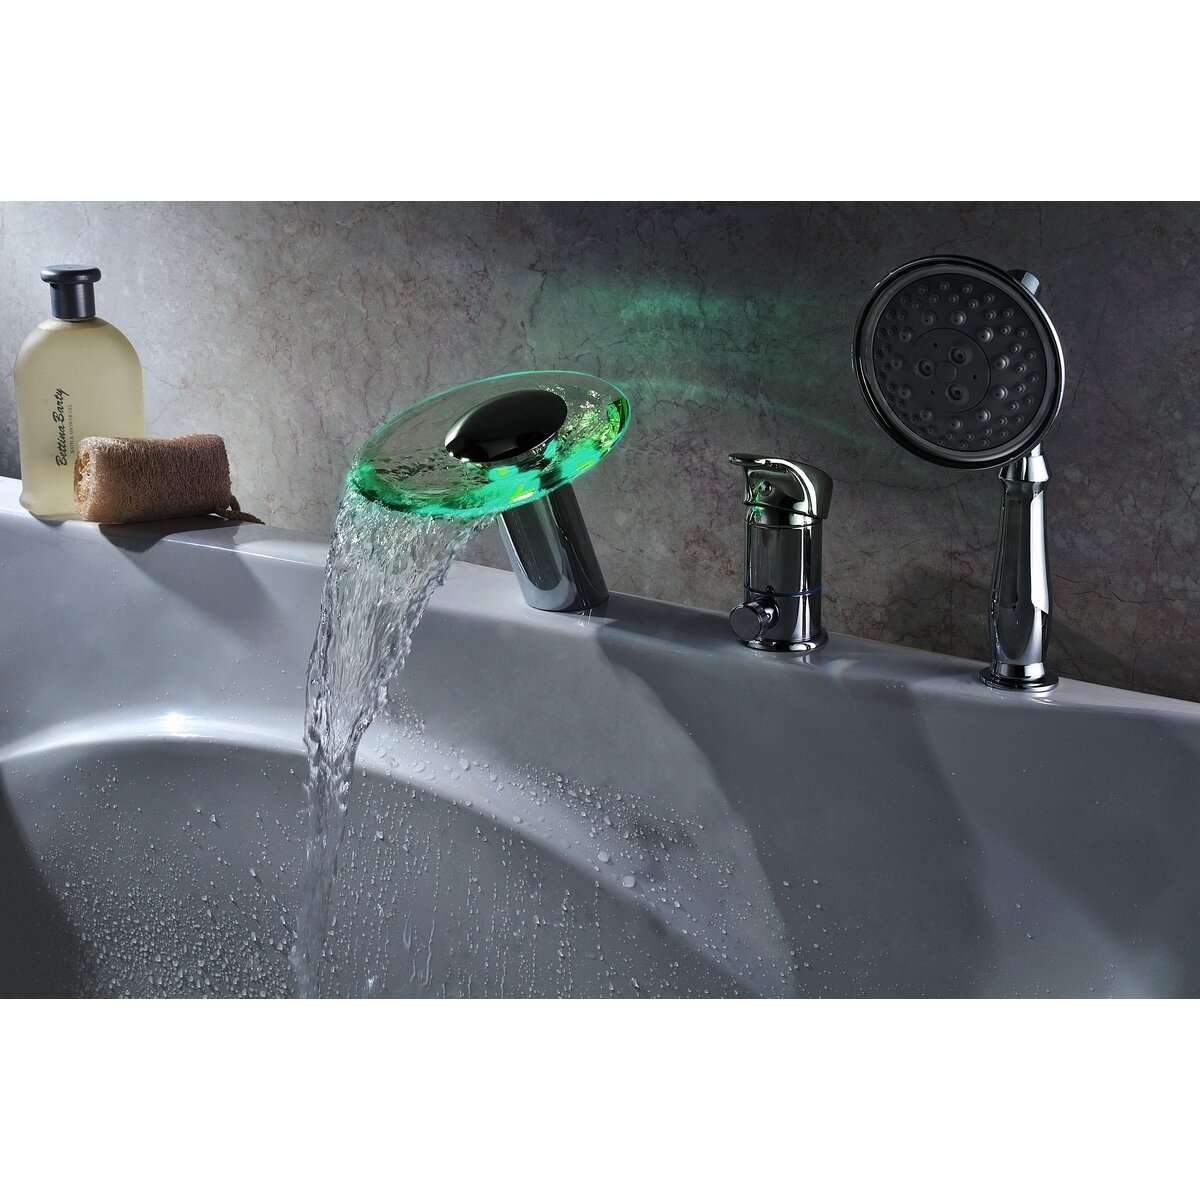 Sumerain Single Handle Deck Mount Tub Faucet Set with ...